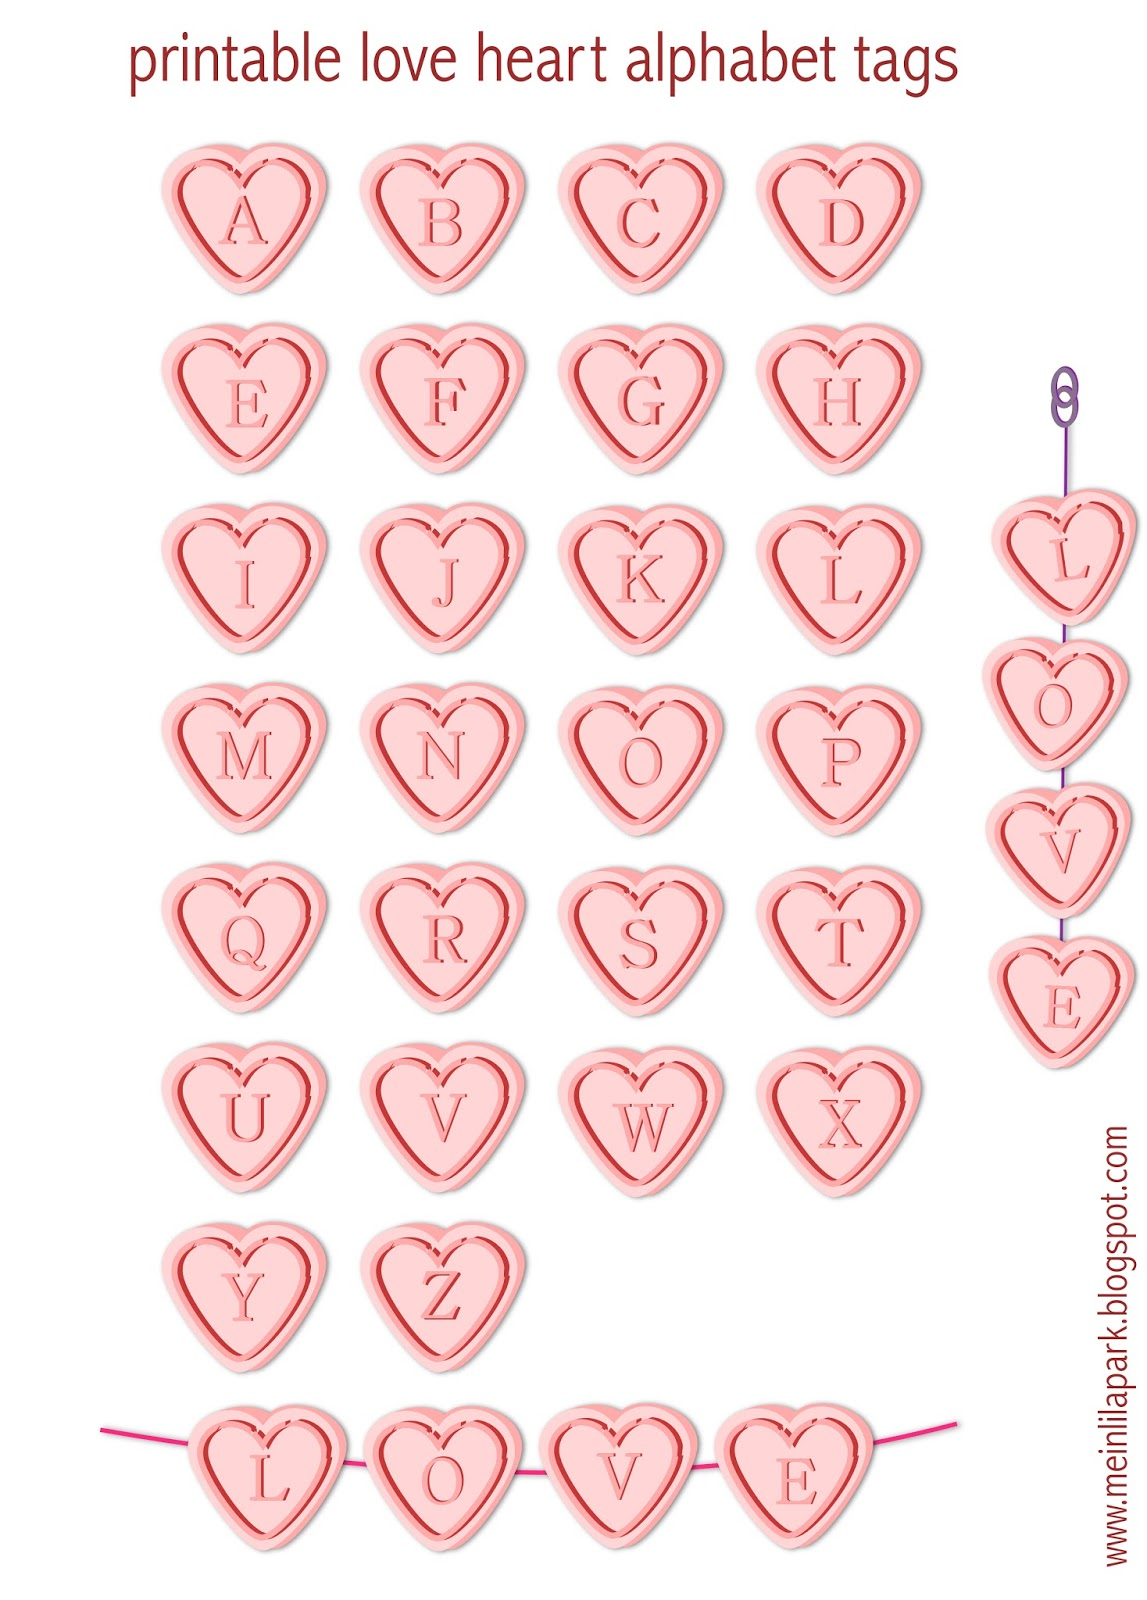 Free printable alphabet letter tags : love hearts ... K Alphabet In Heart